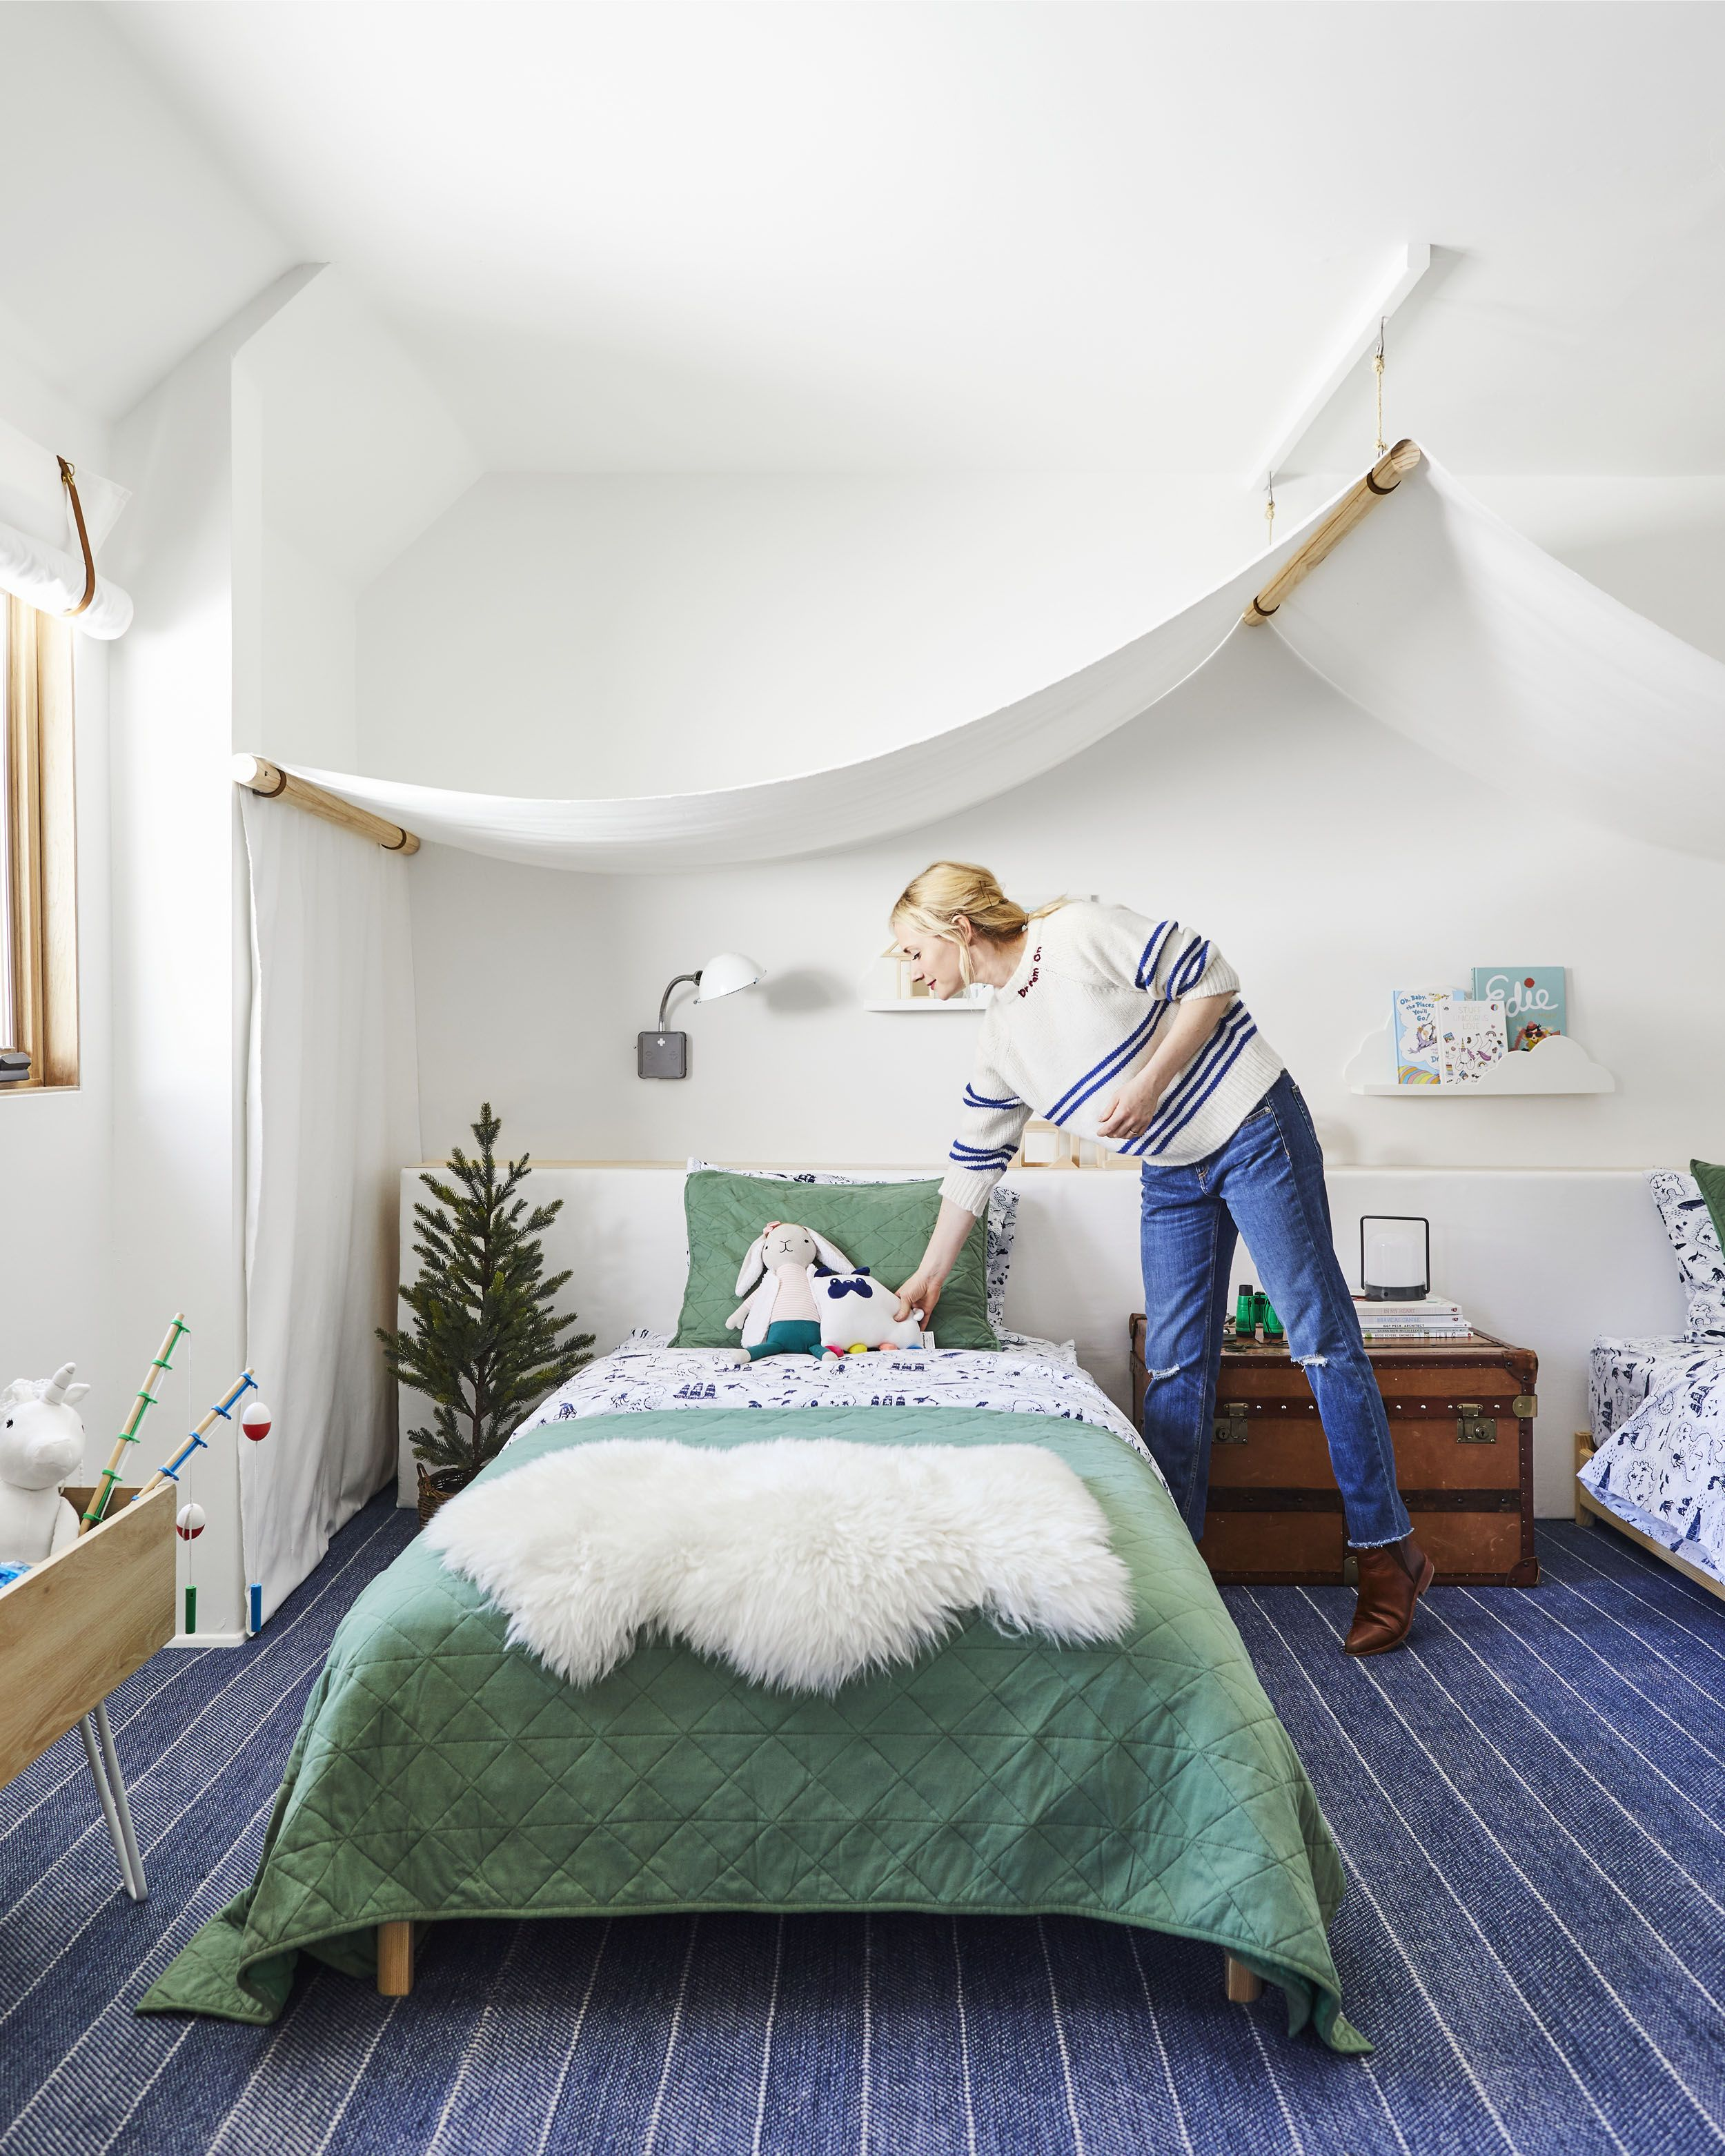 How We Designed an Adventure-Themed Shared Boy & Girl Bedroom (+ DIYs) images